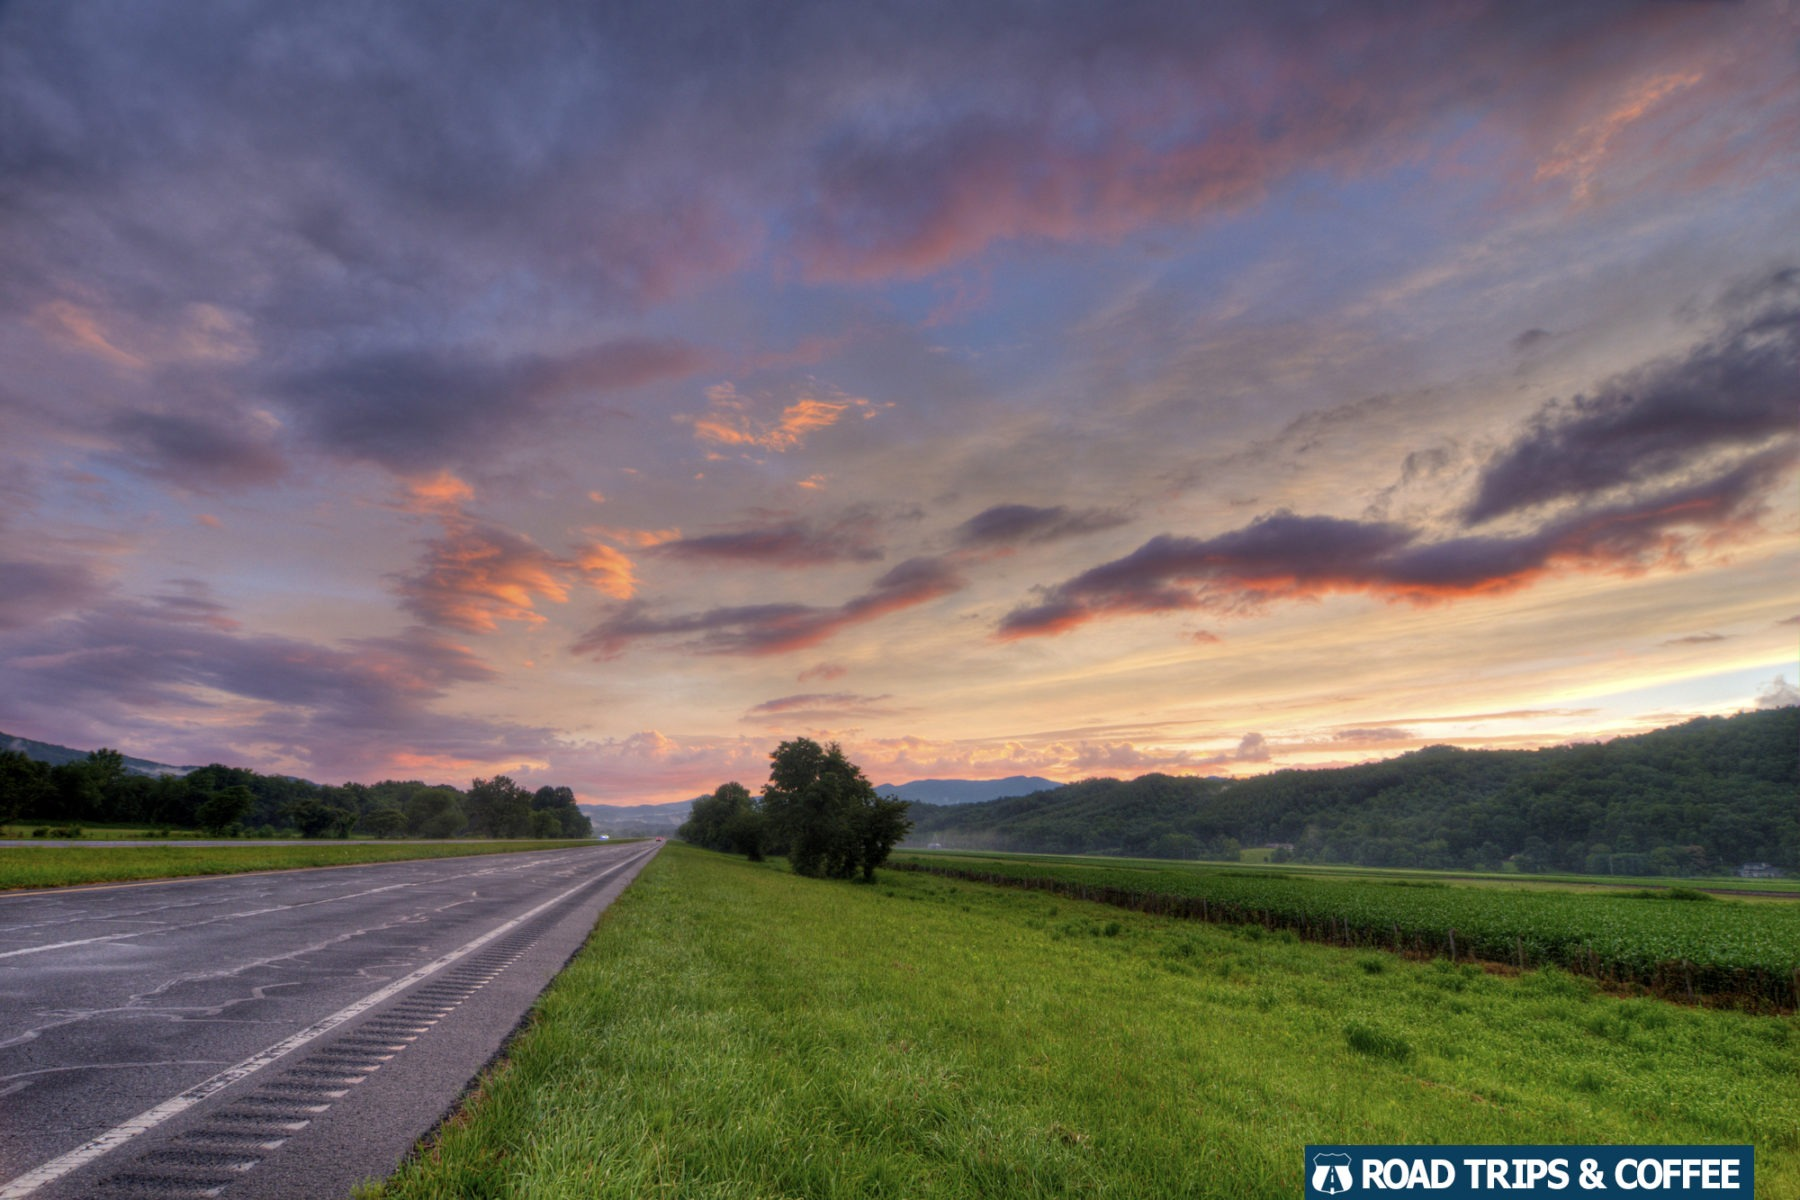 A long highway stretches into the distance with a gorgeous sunset across the sky in North Carolina.